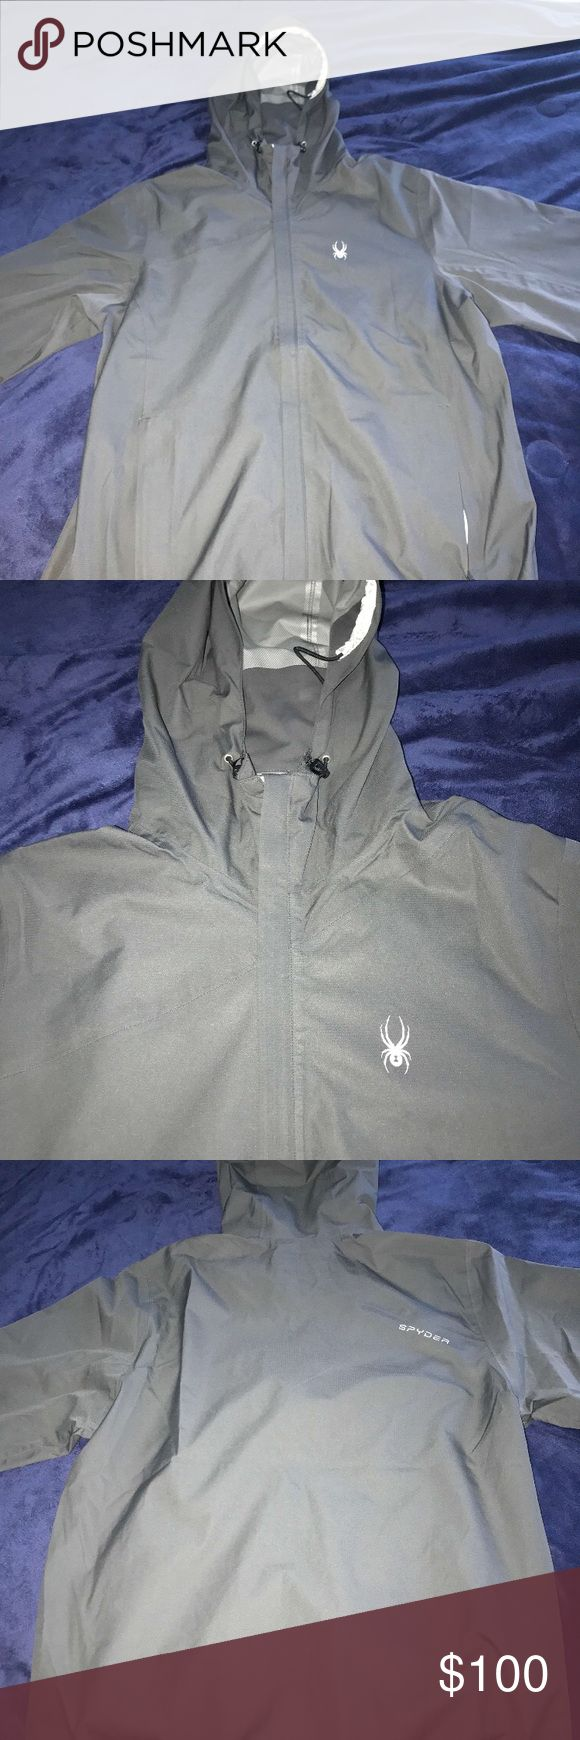 Spyder Shell Jacket Spyder Bayse Shell Jacket Men's size medium. Never worn brand new. Spyder Jackets & Coats Ski & Snowboard